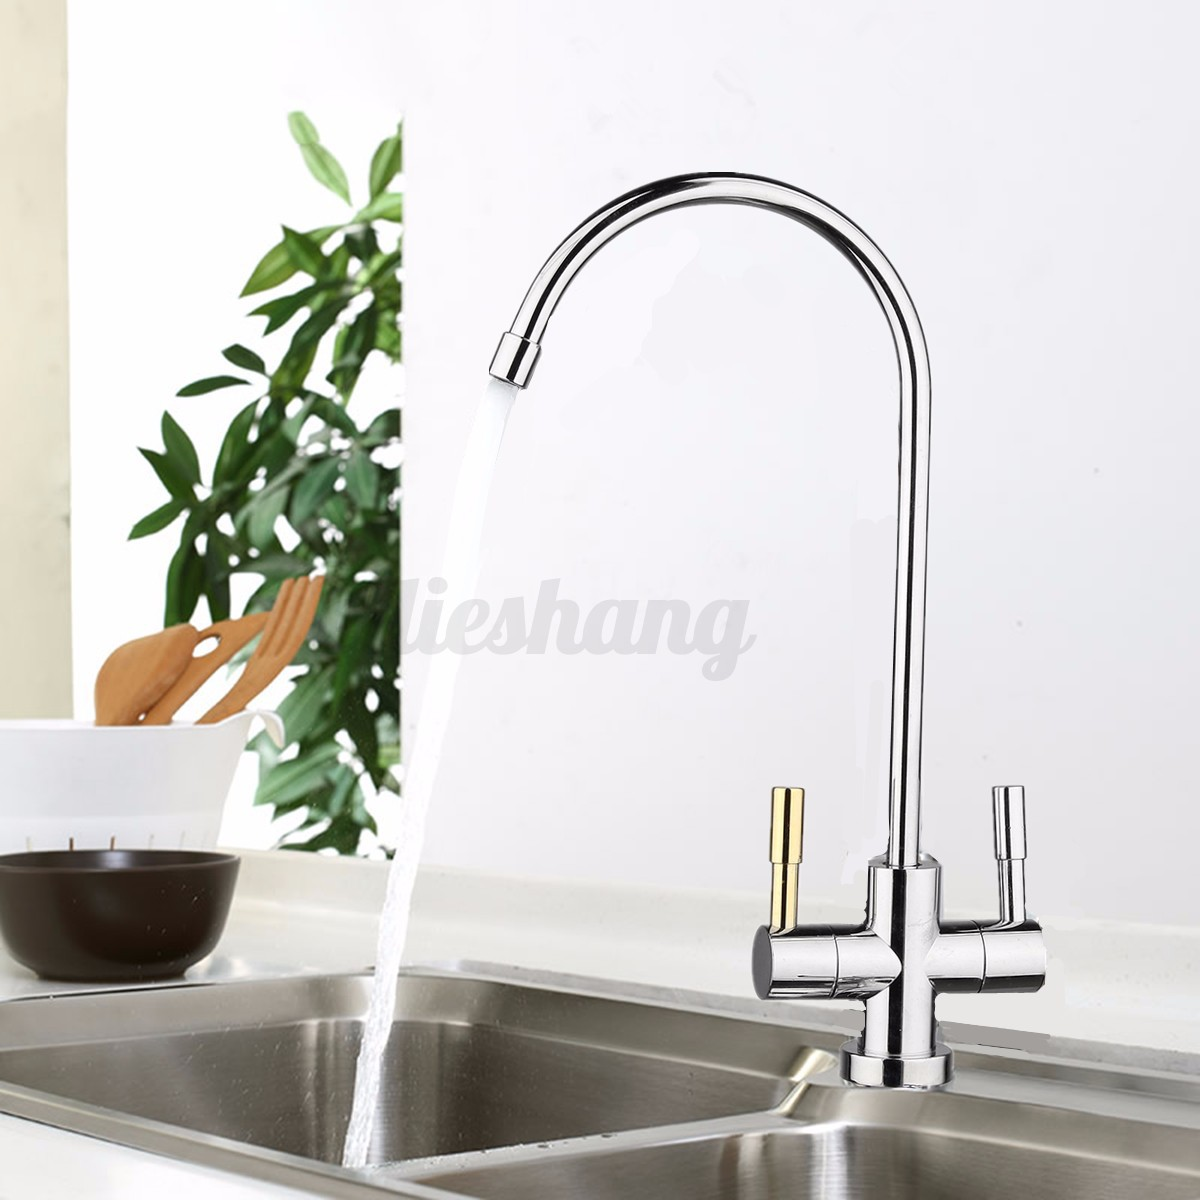 1 4 39 39 Kitchen Reverse Osmosis System Ro Drinking Water Filter Faucet Under Sink Ebay